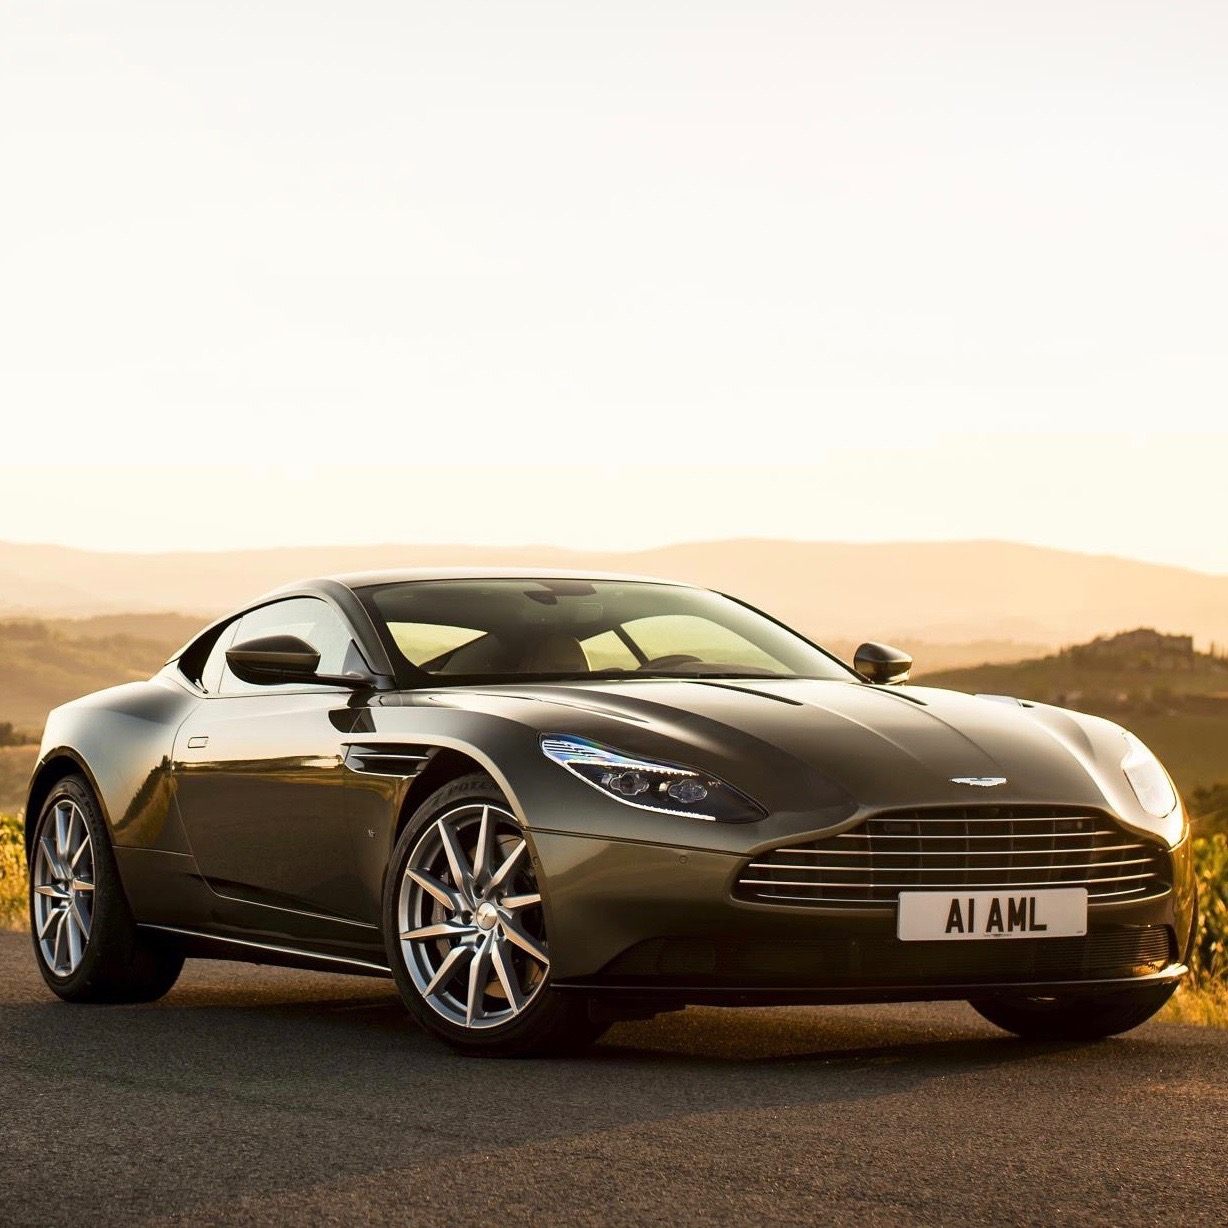 Overdrive Aston Martin Db11 Is As Good As It Looks Lifestyle Asia Singapore